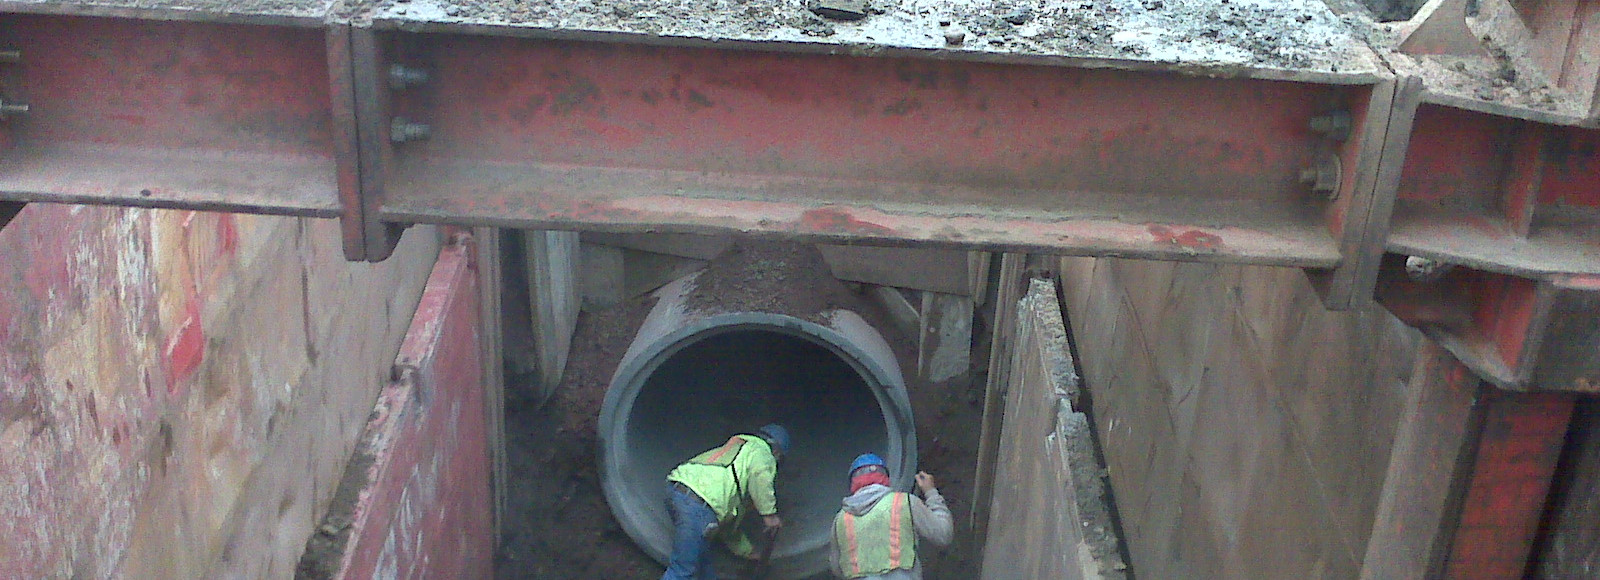 BAJSA - 84in Reinforced Concrete Pipeline